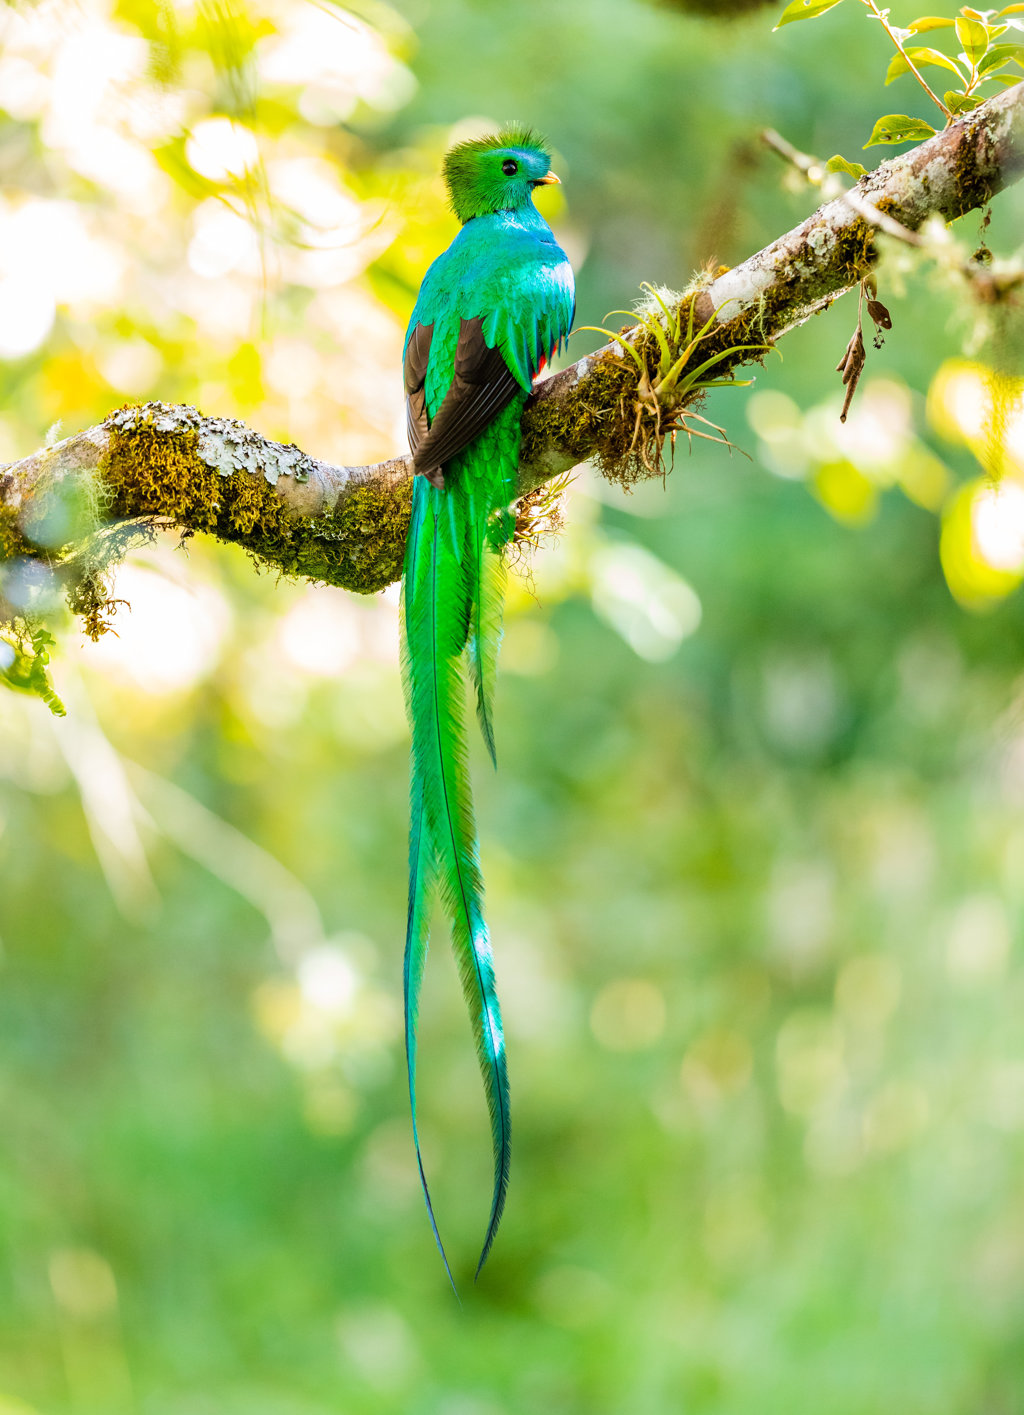 Photo by Zdenek Machacek Resplendent Quetzal